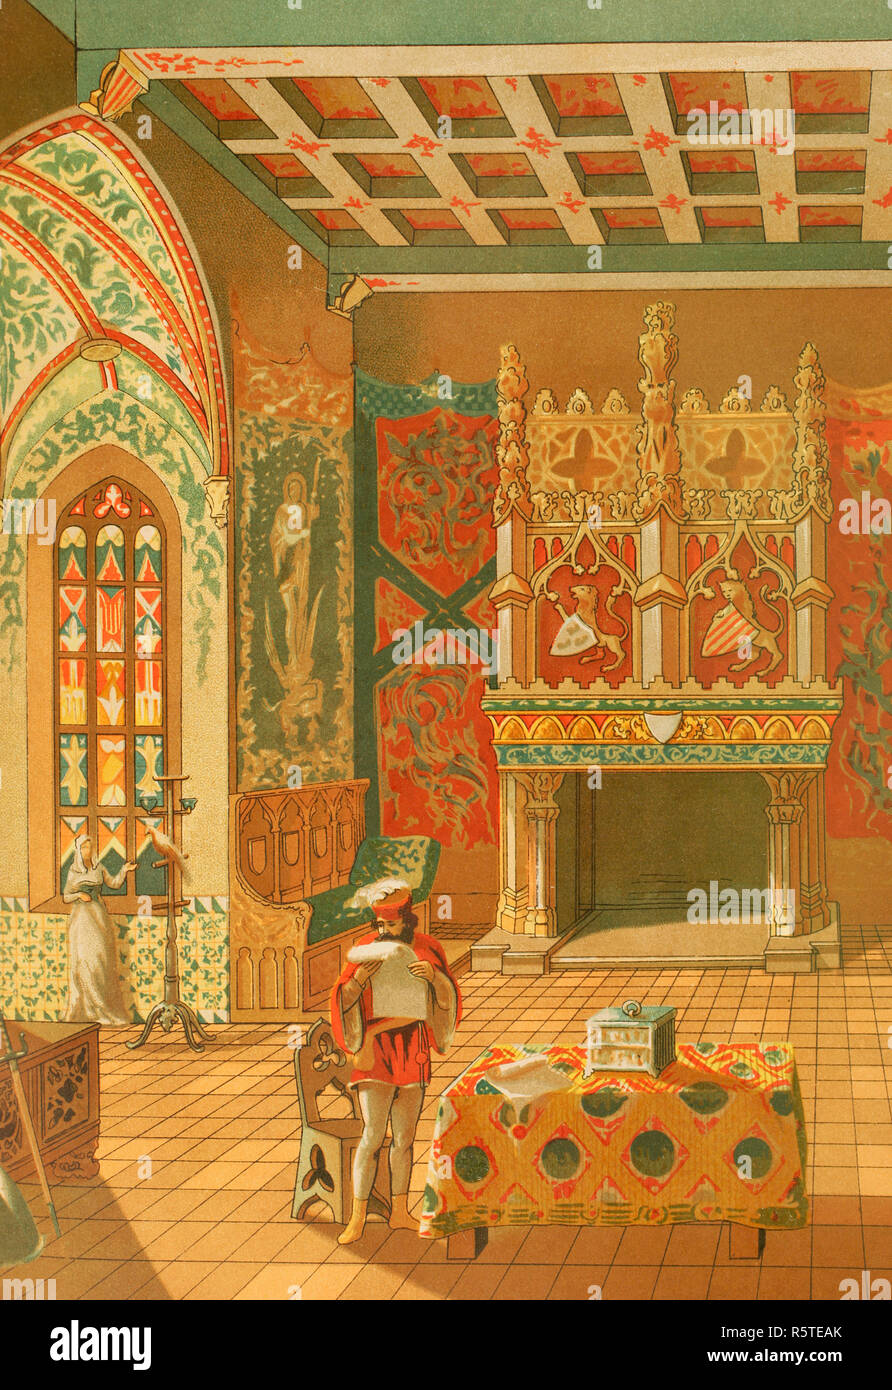 Europe. Middle Ages. Feudal Society (9th-15th century). Hall of a feudal castle. Chromolithography. La Civilizacion (The Civilization), volume III, 1882. - Stock Image